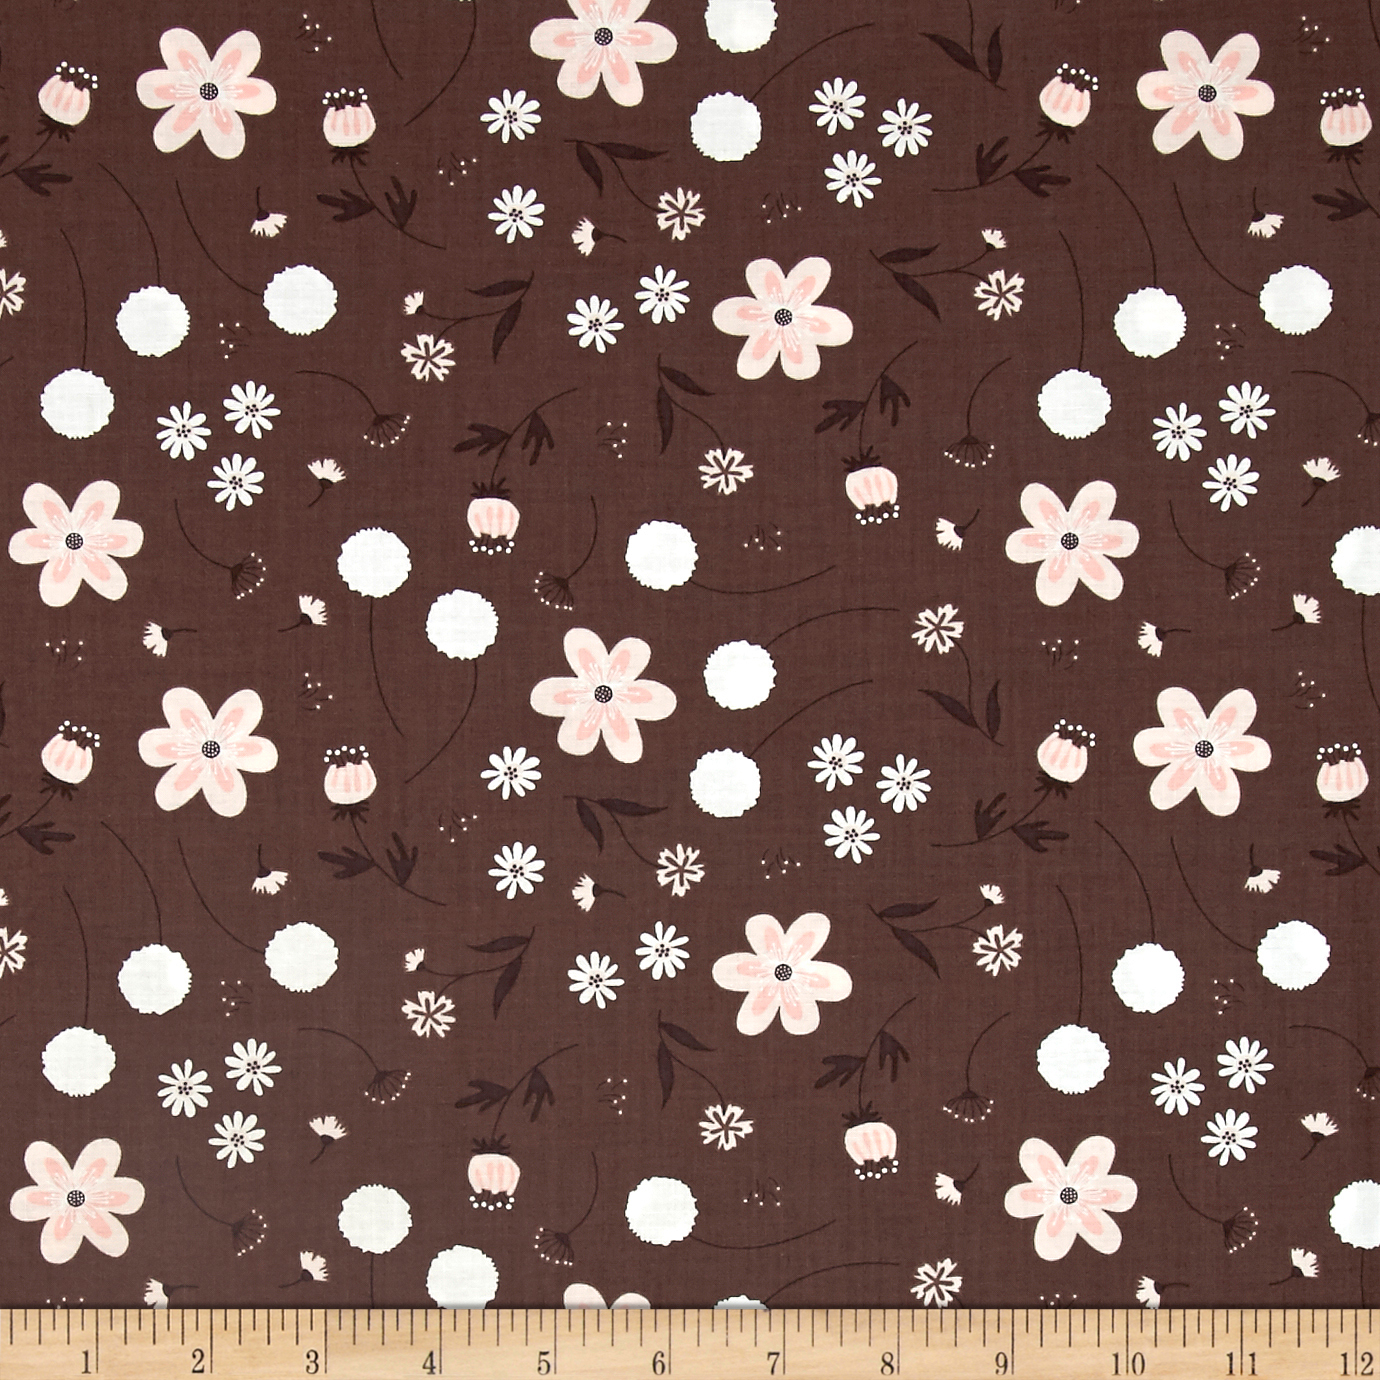 In The Woods Wild Garden Dark Taupe Fabric by Eugene in USA